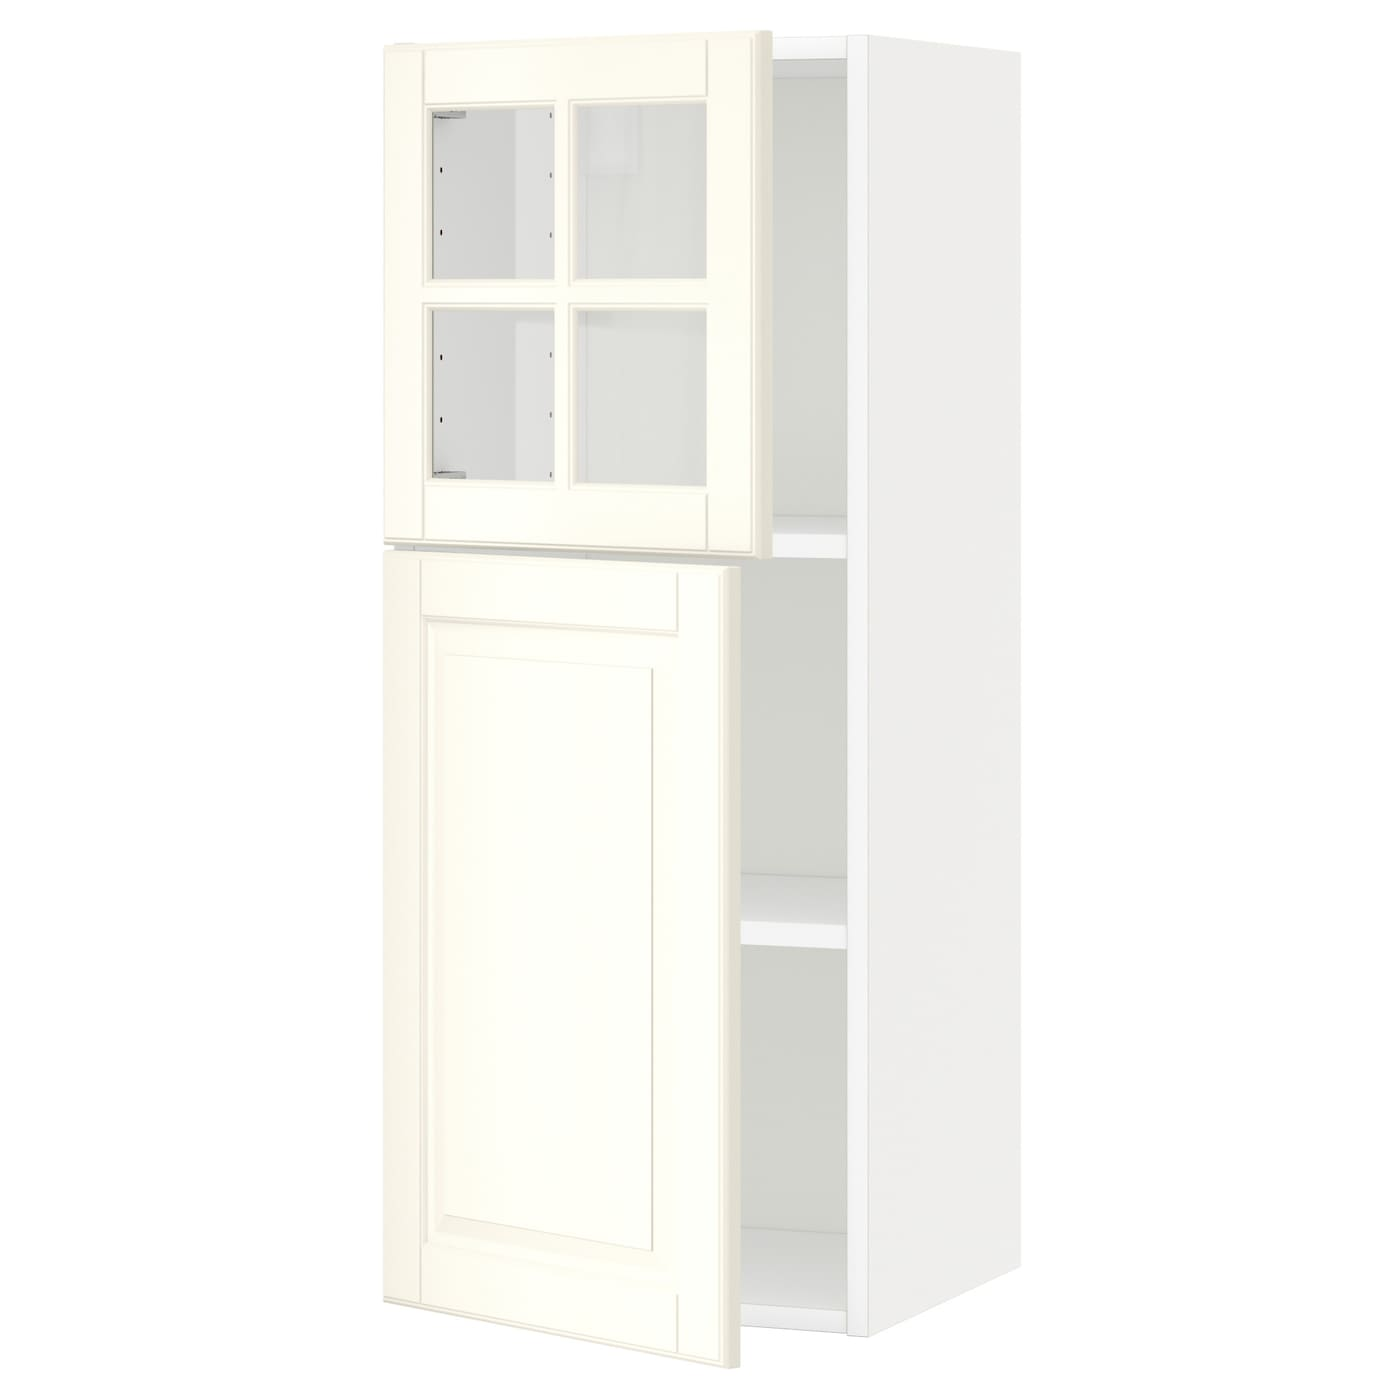 Metod wall cab w shelves door glass door white bodbyn off for Off the shelf cabinets